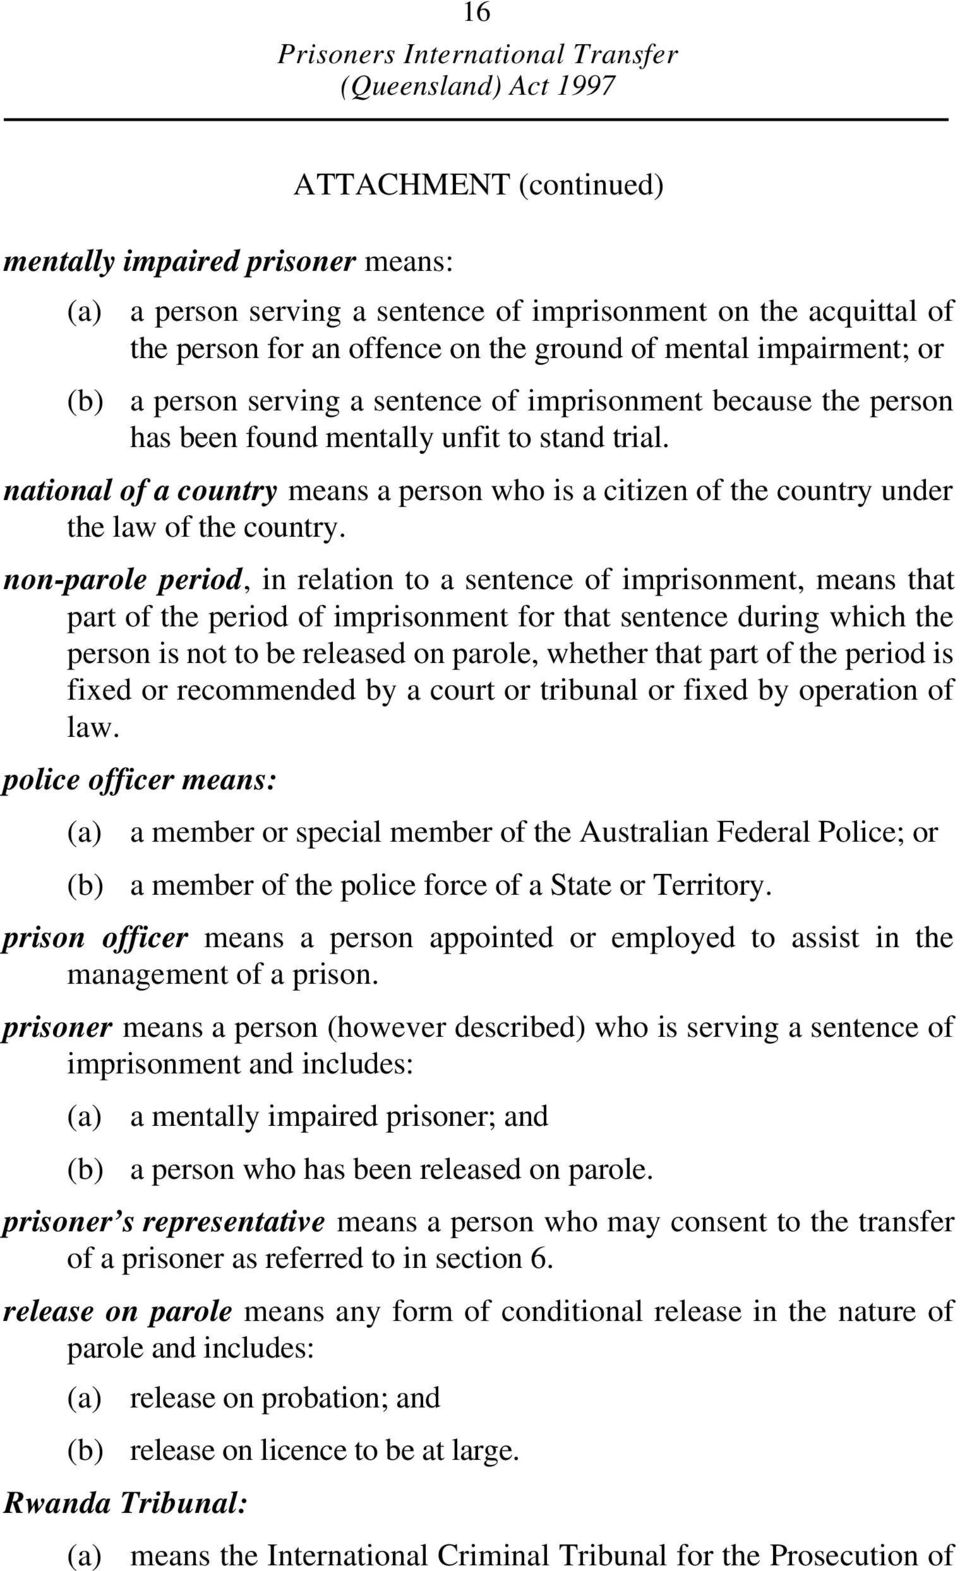 non-parole period, in relation to a sentence of imprisonment, means that part of the period of imprisonment for that sentence during which the person is not to be released on parole, whether that